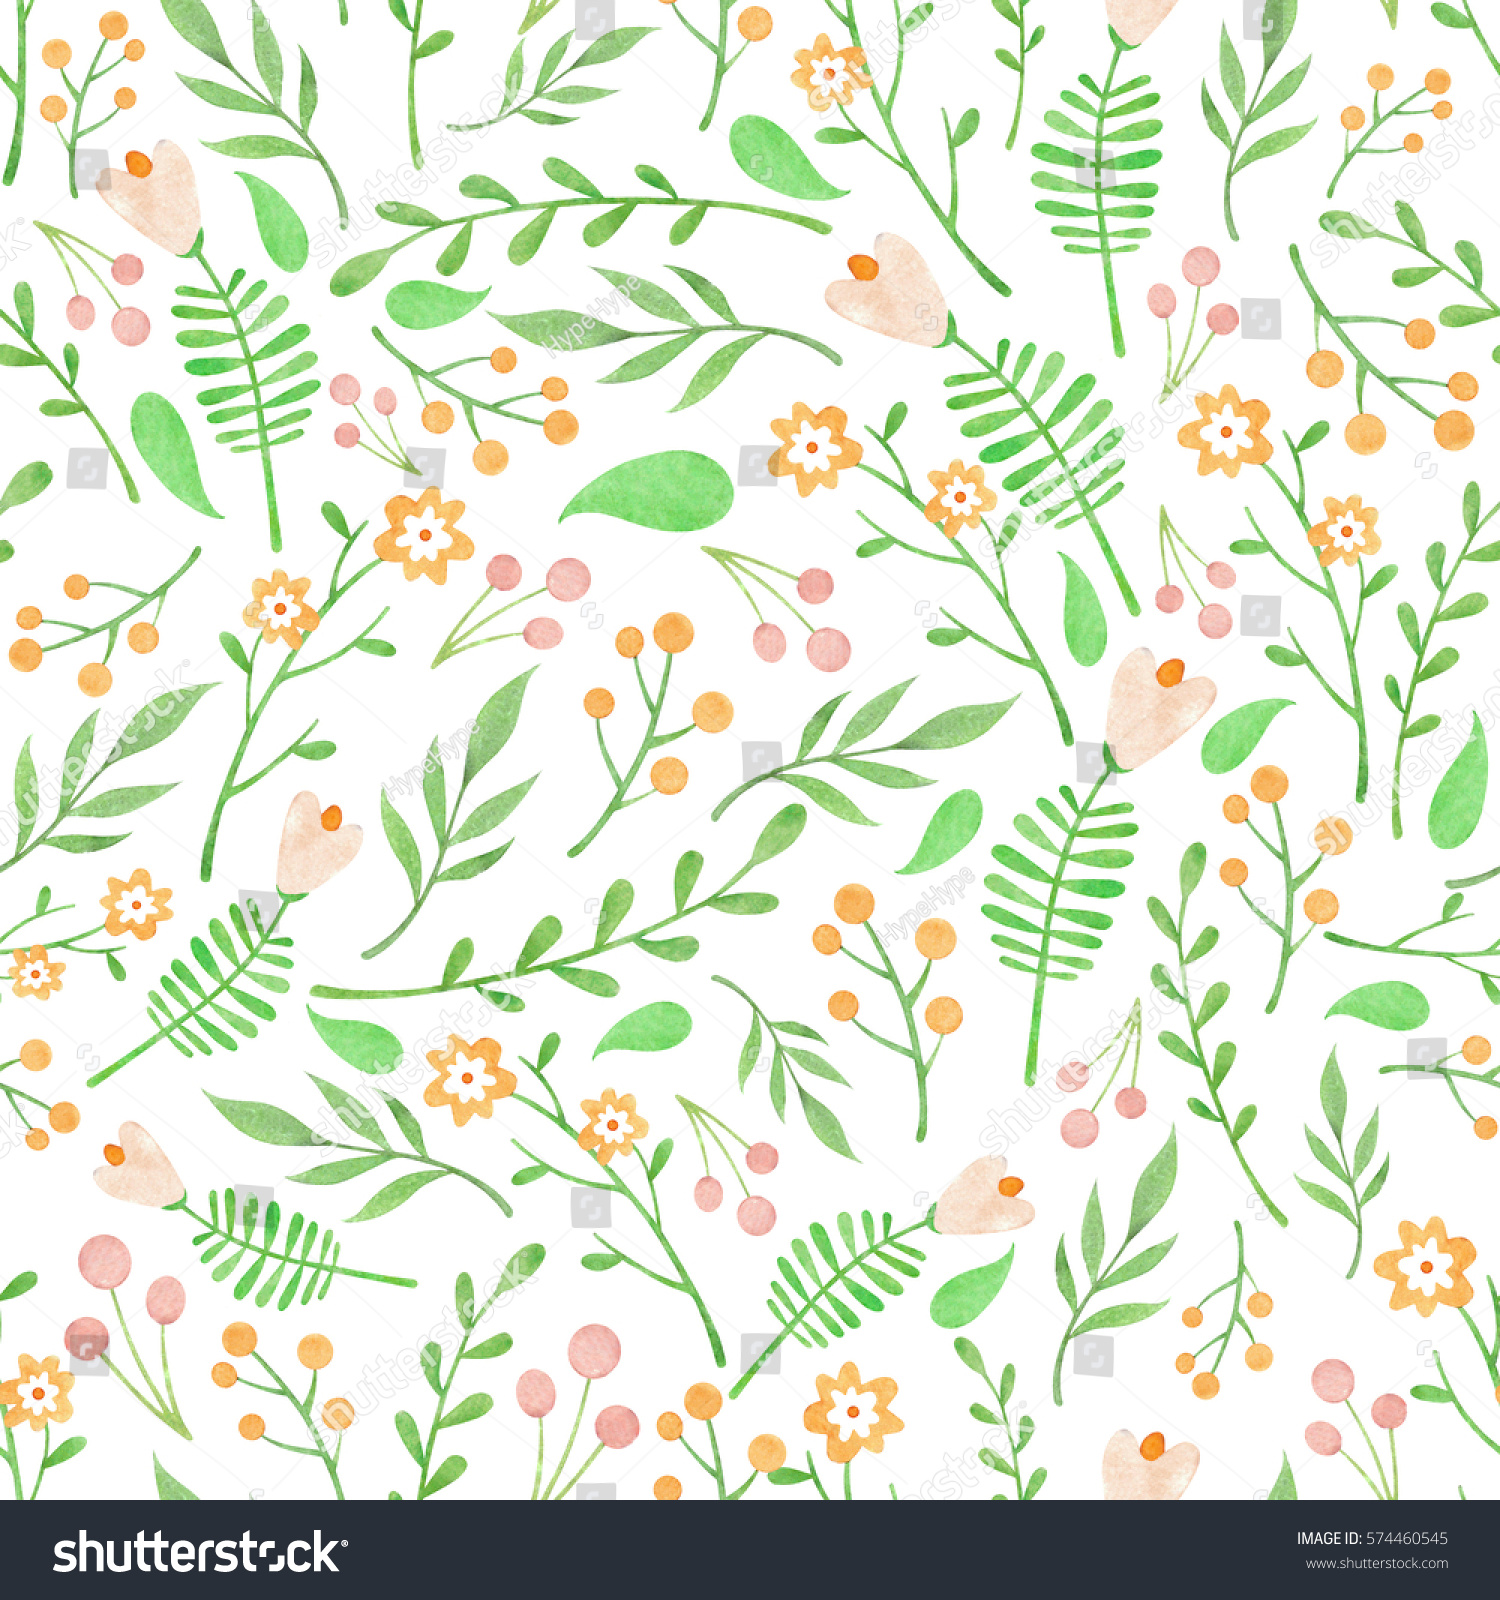 Watercolor Floral Pattern With Orange And Light Pink Flowers Berries